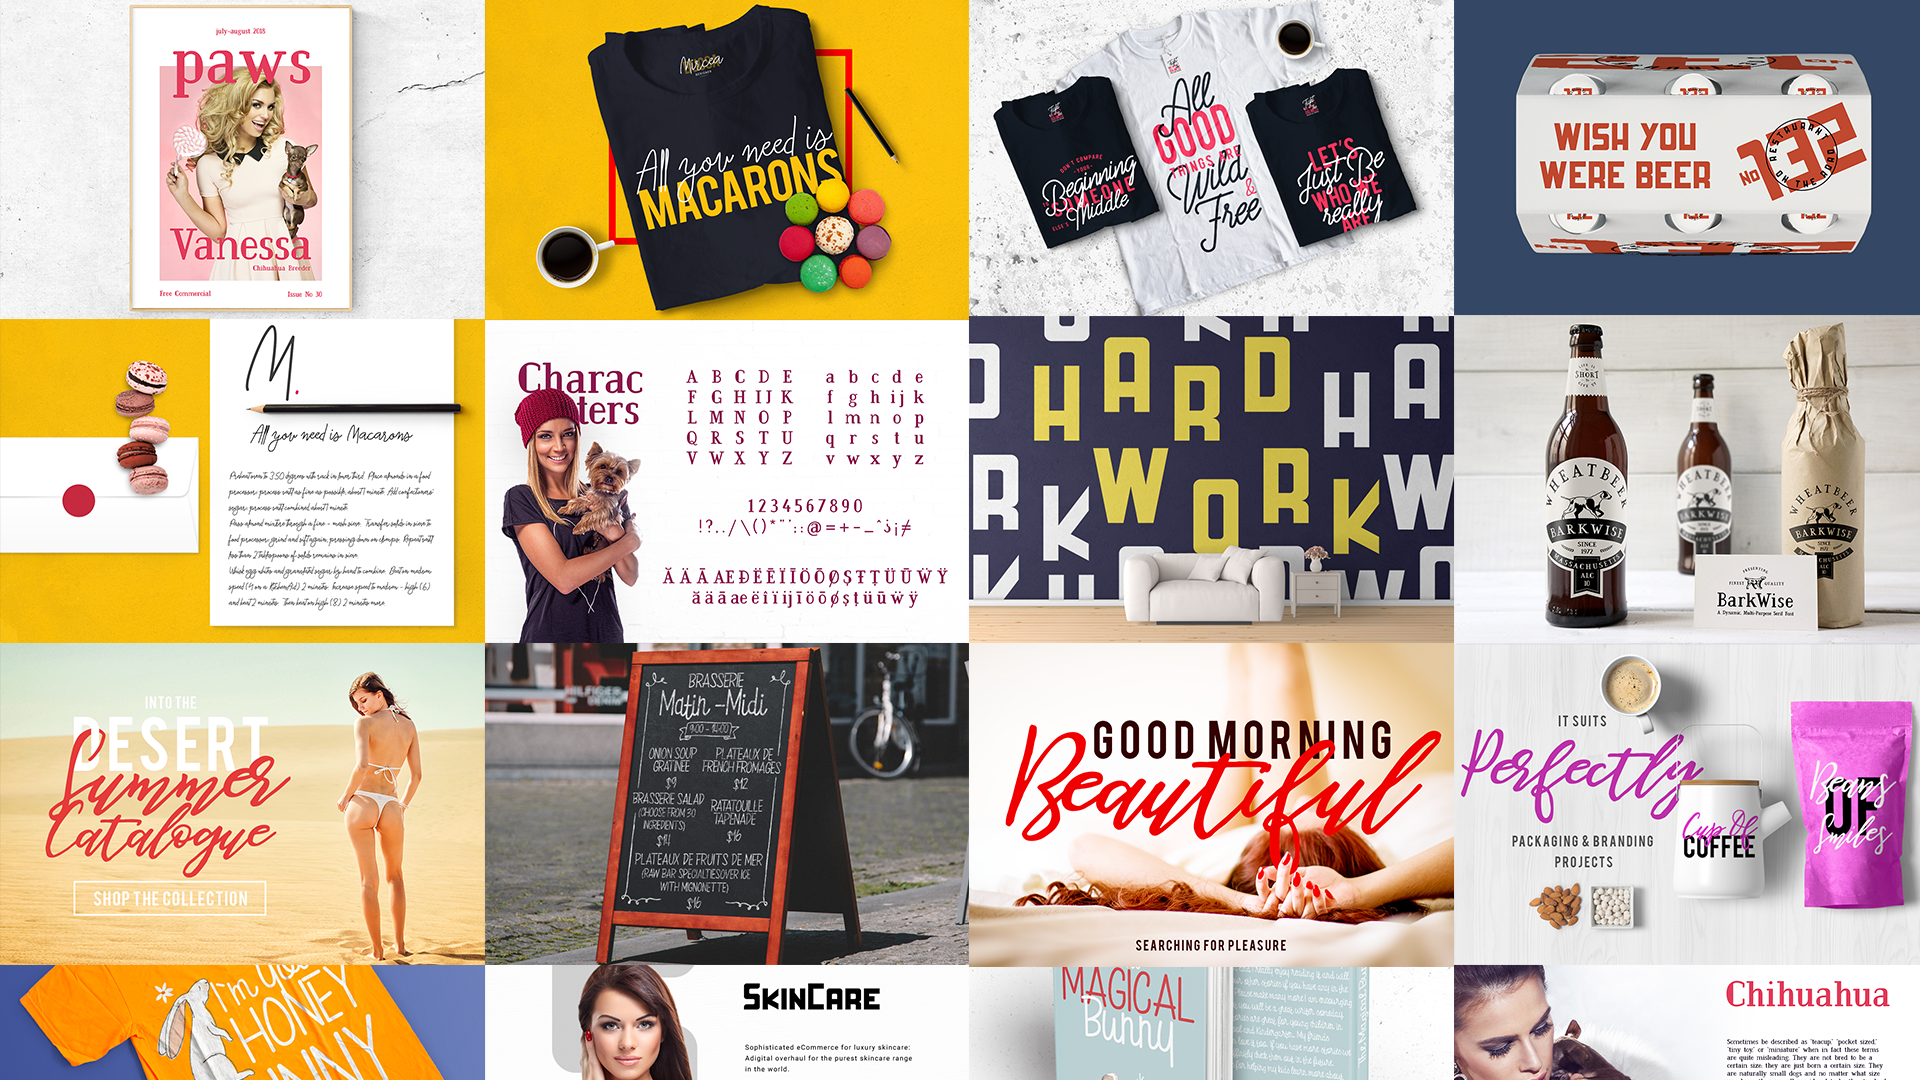 Dope Fonts - 6 Awesome Fonts in a Bundle Deal - The Font Bundle3